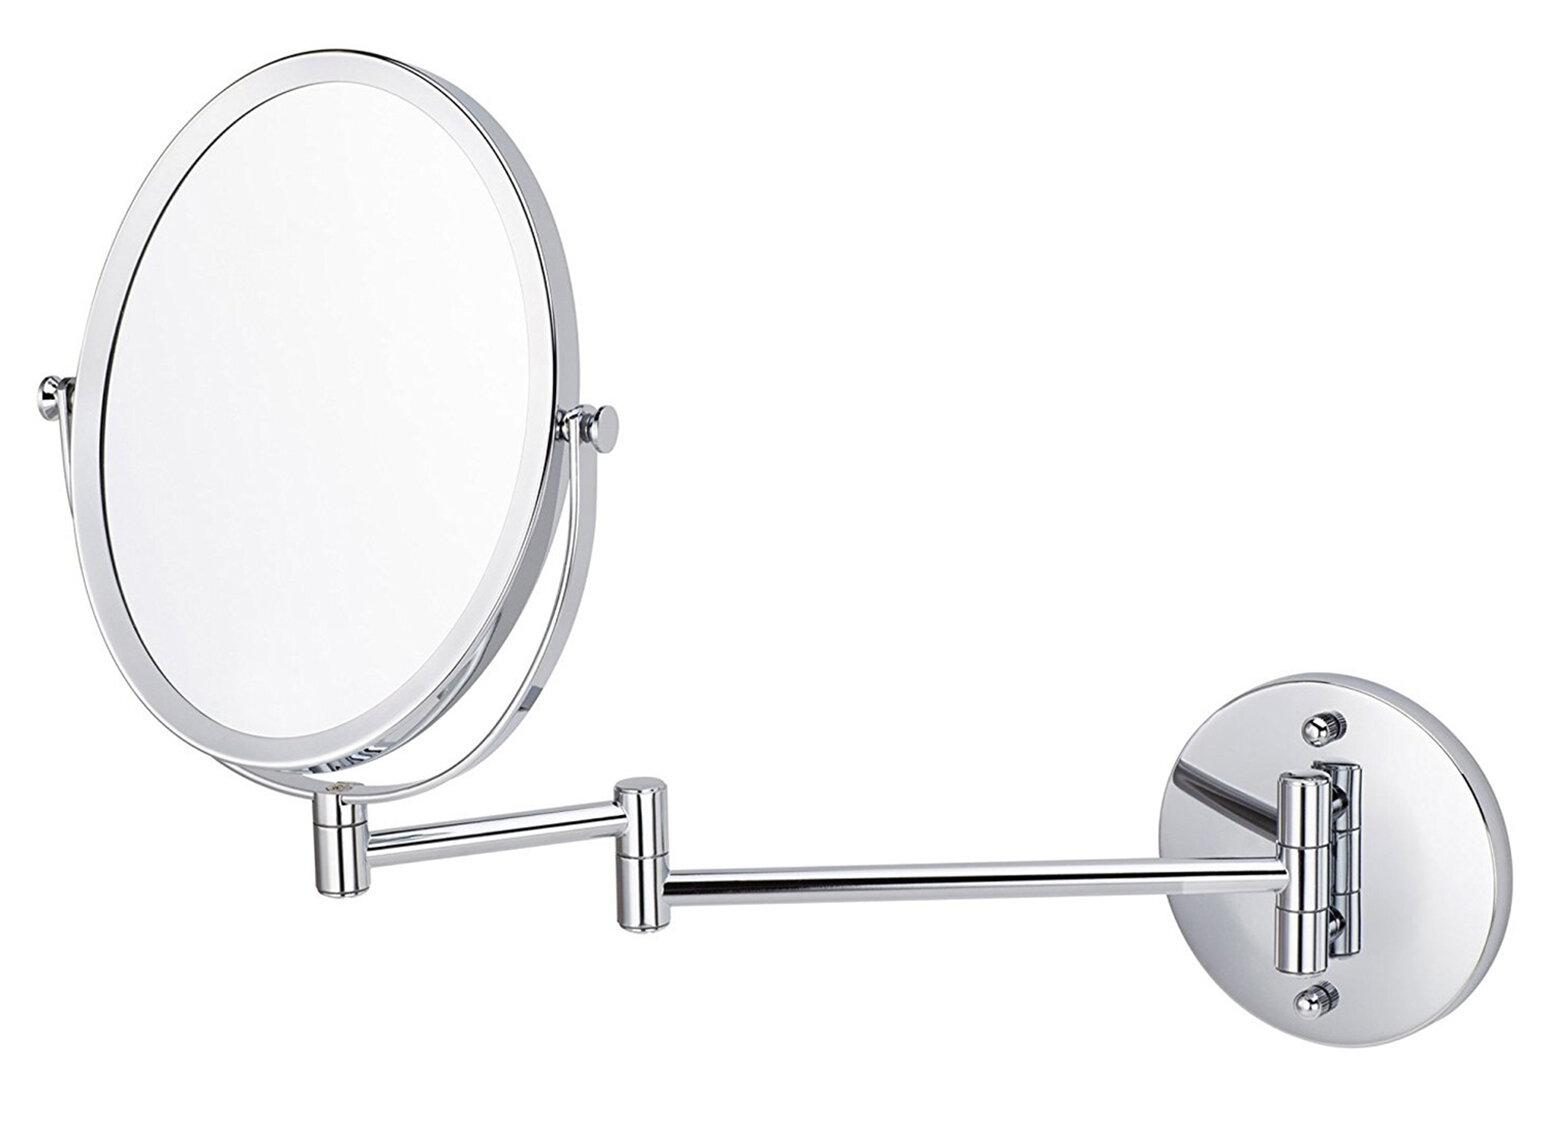 Parkins Oval Wall Mount Magnifying Vanity Mirror